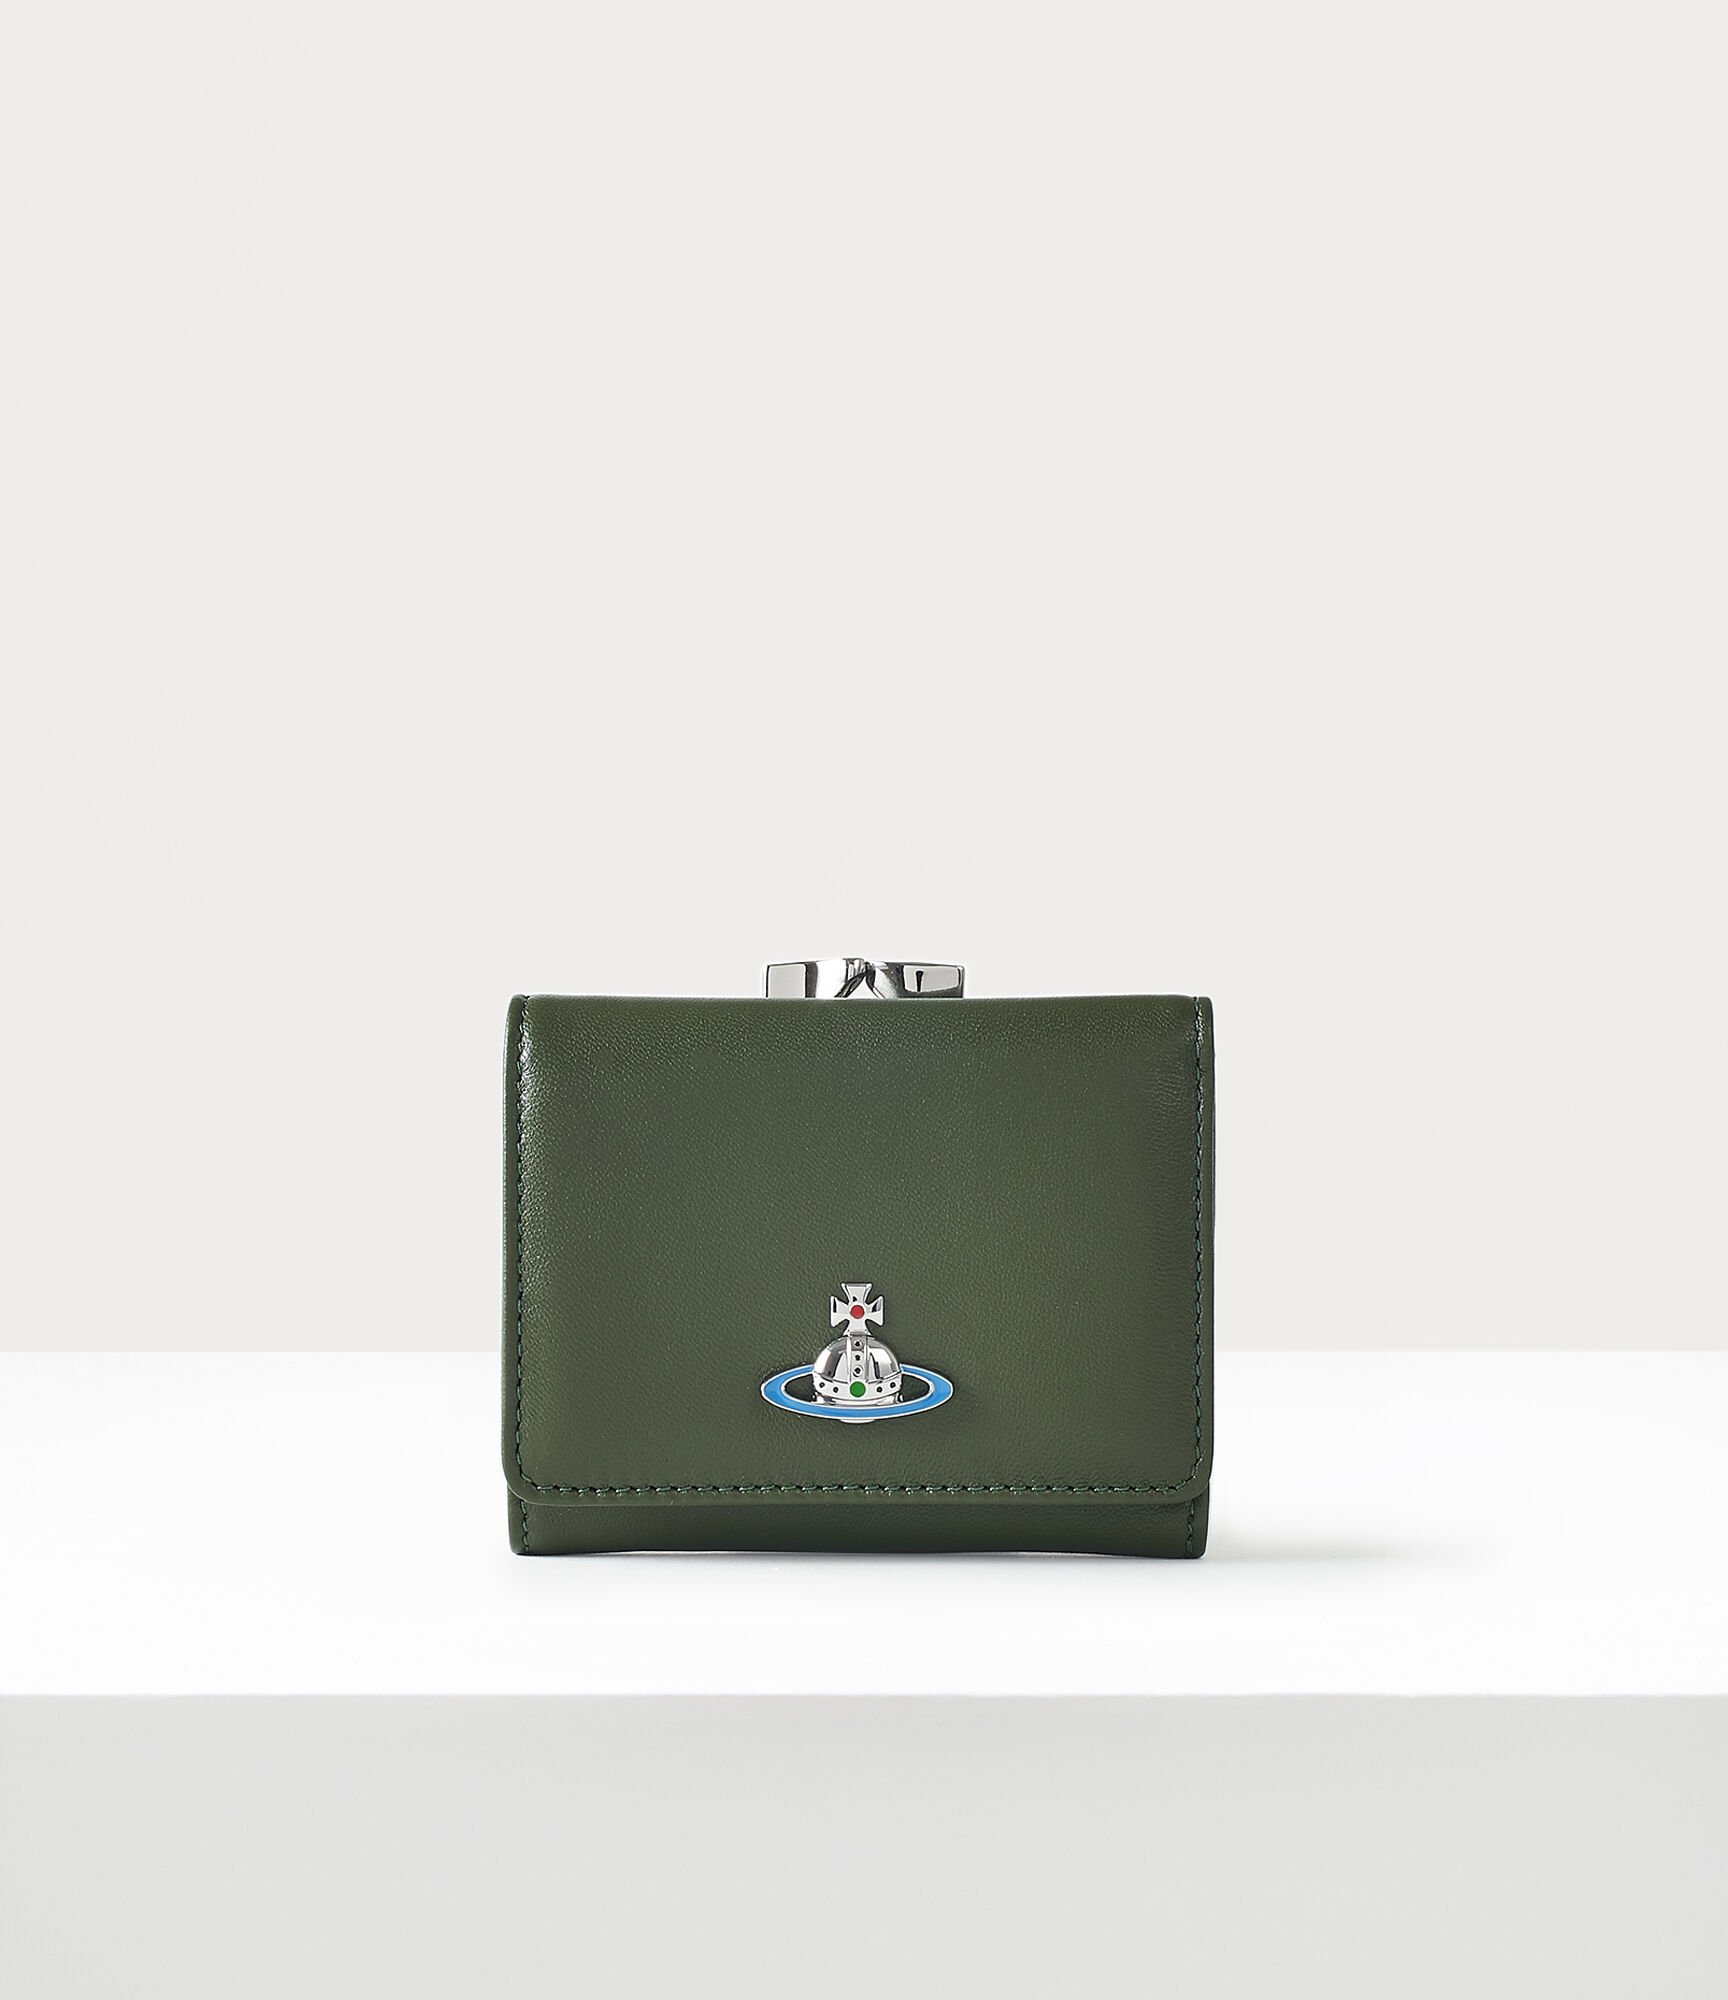 Vivienne Westwood Small Frame Wallet Green